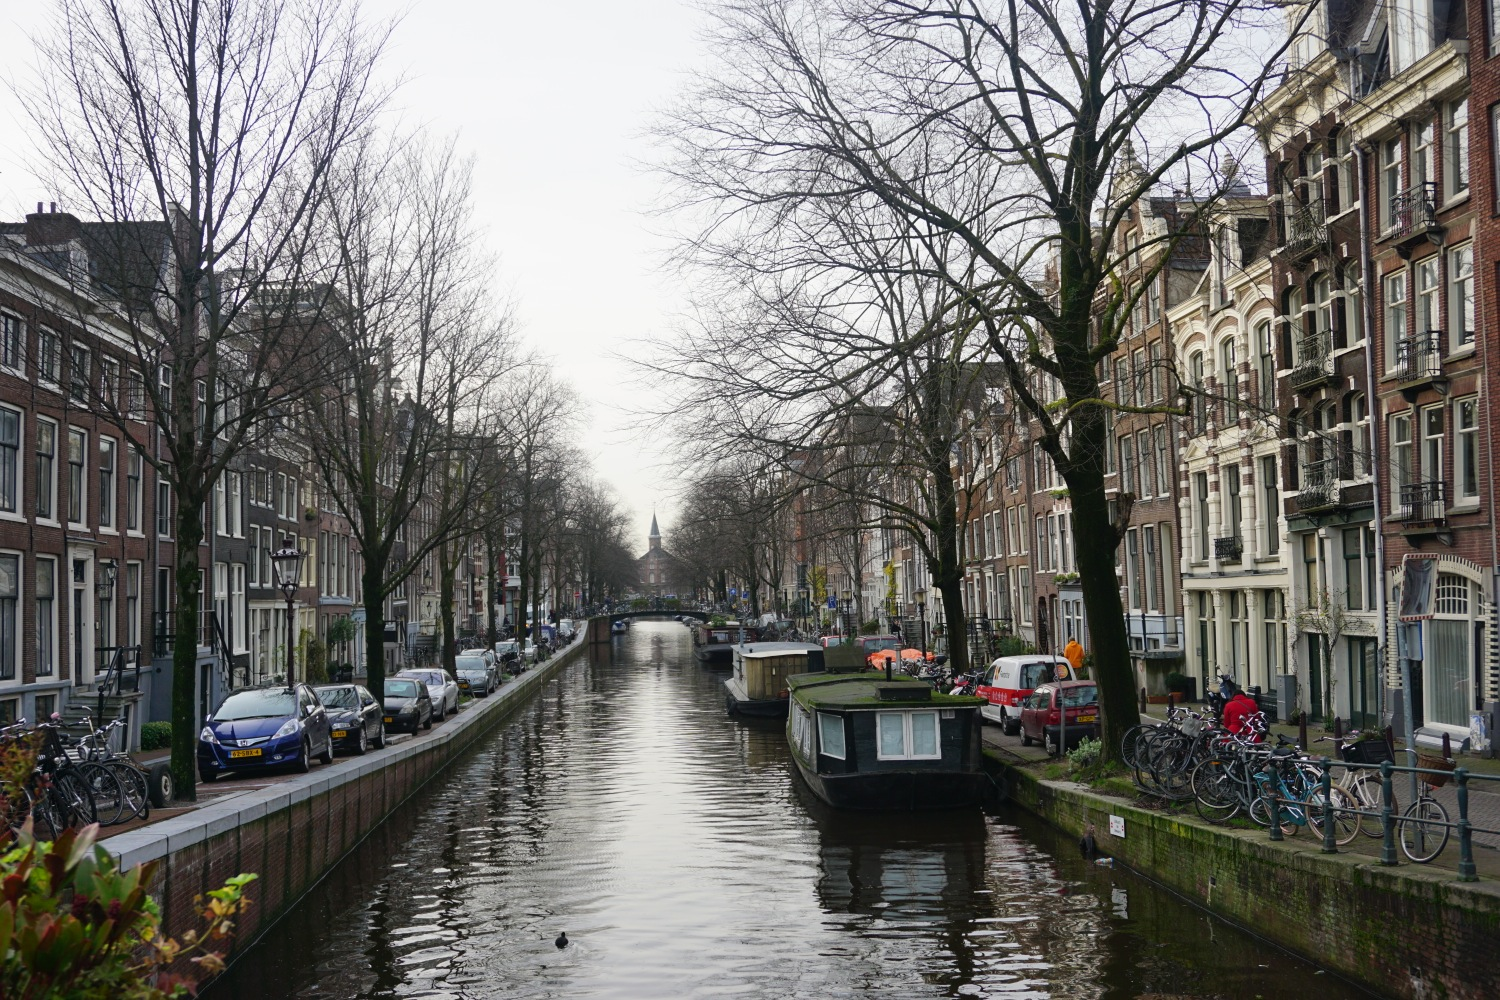 Let S Do Amsterdam Isostilo What To Do In Amsterdam The City Of Museums Canals And